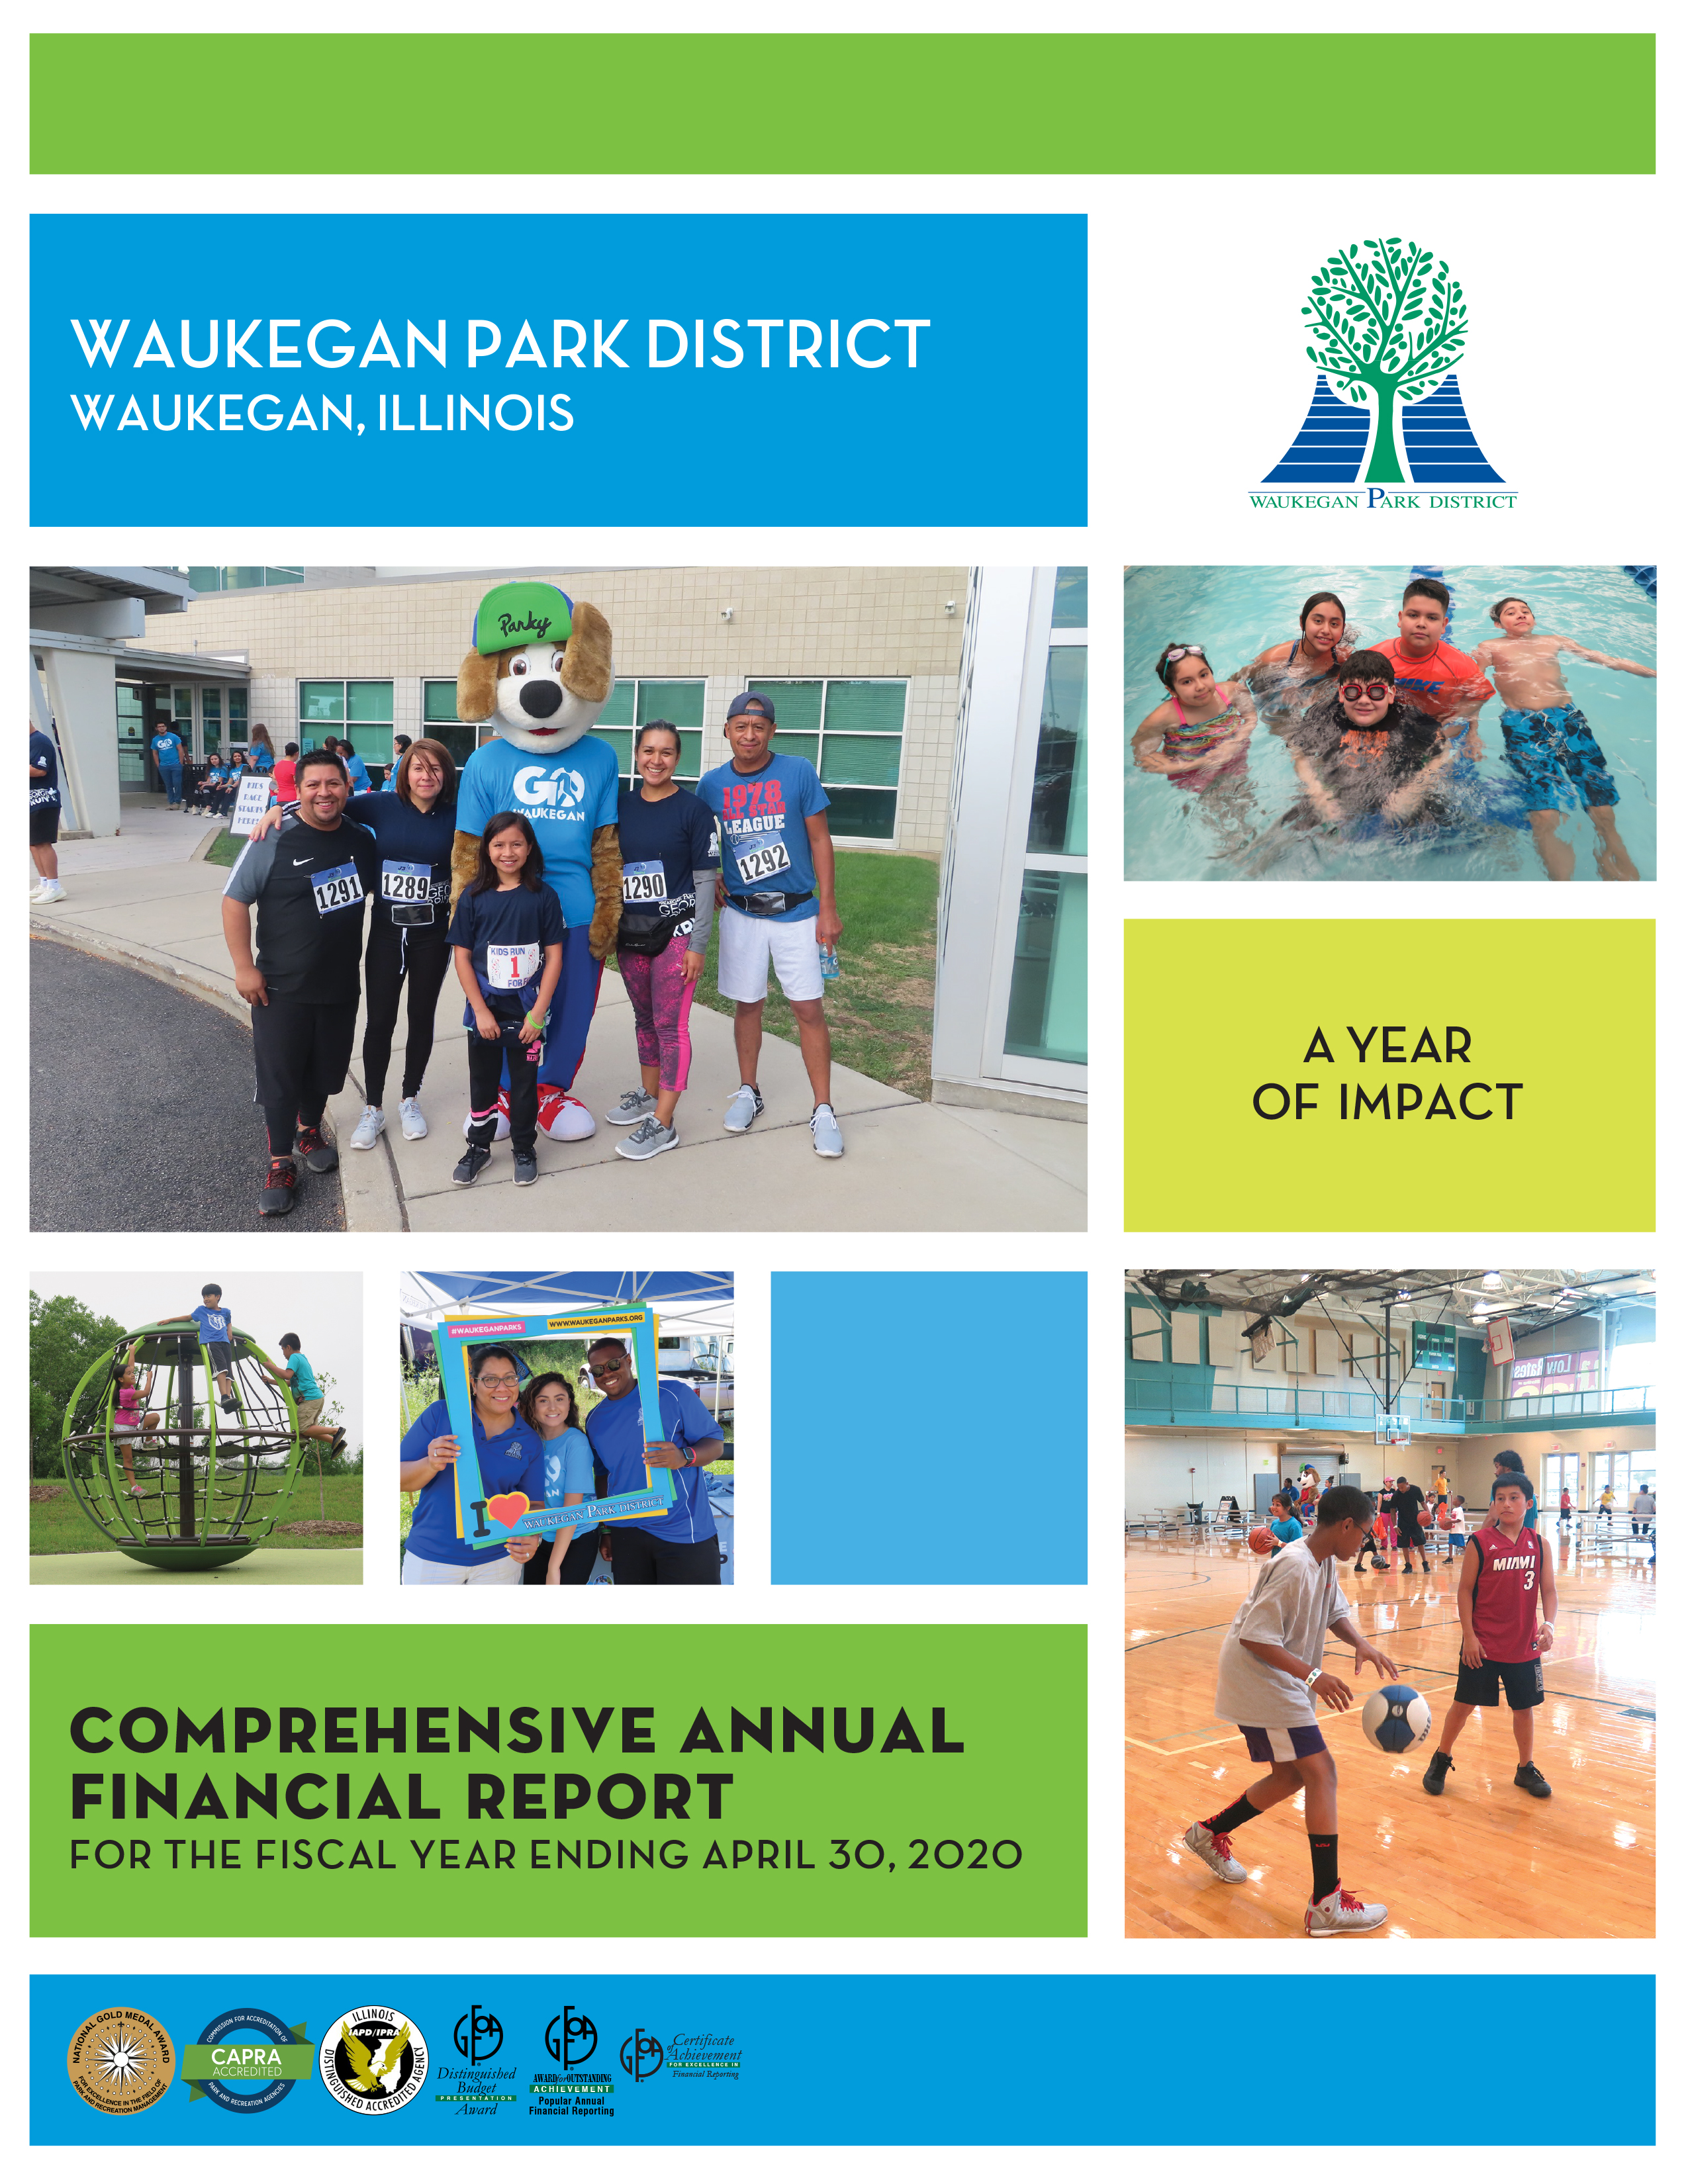 2019-2020 Comprehensive Annual Financial Report Cover